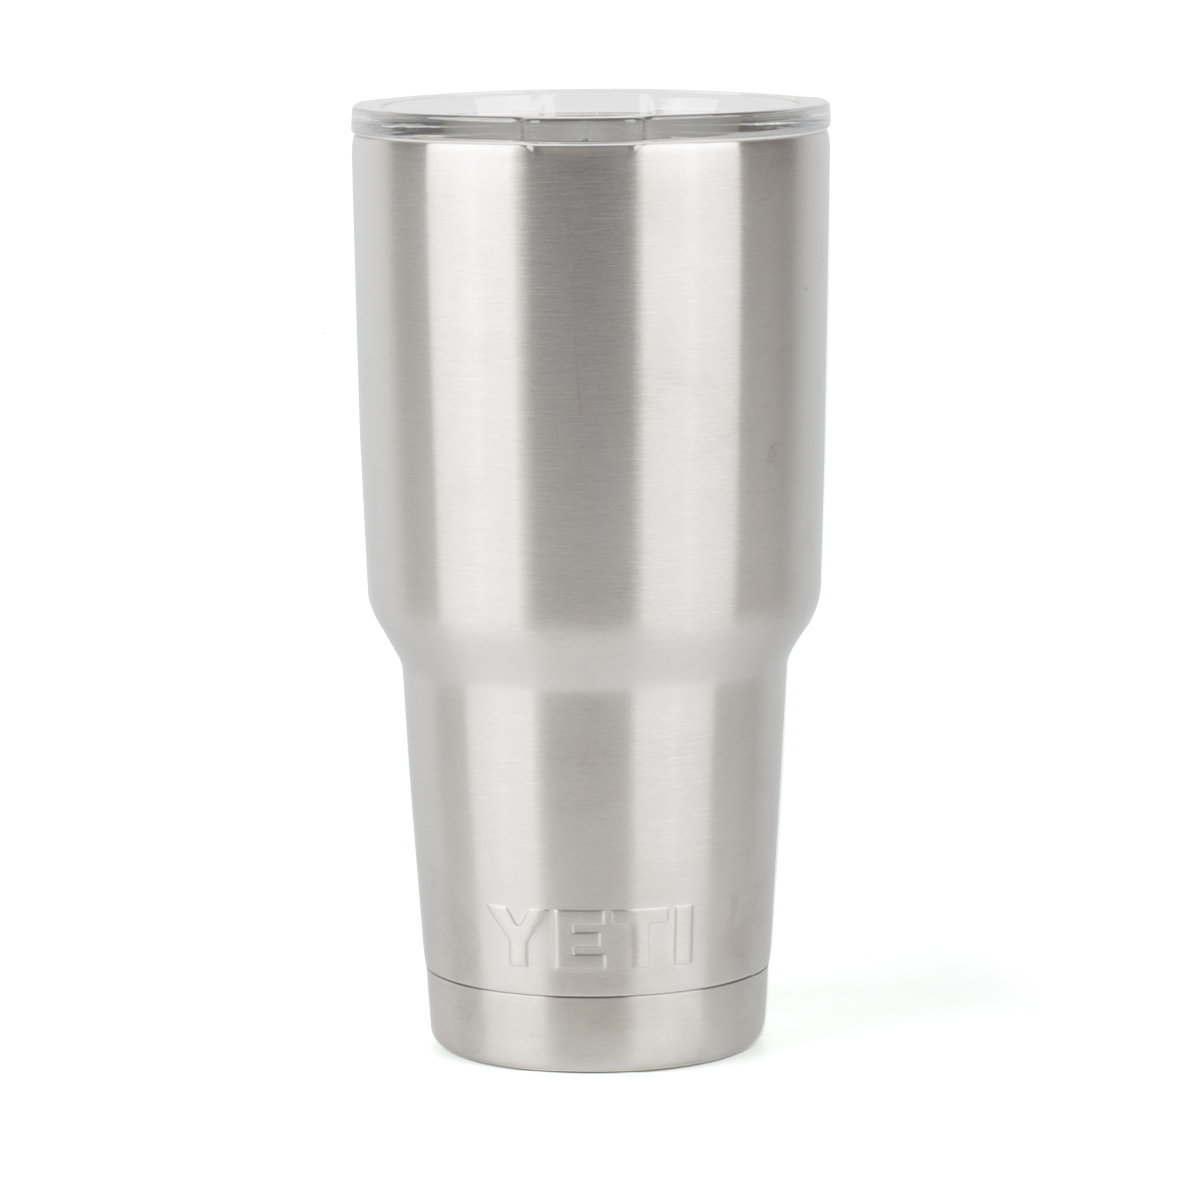 University of Virginia Yeti Rambler Tumbler - 30oz